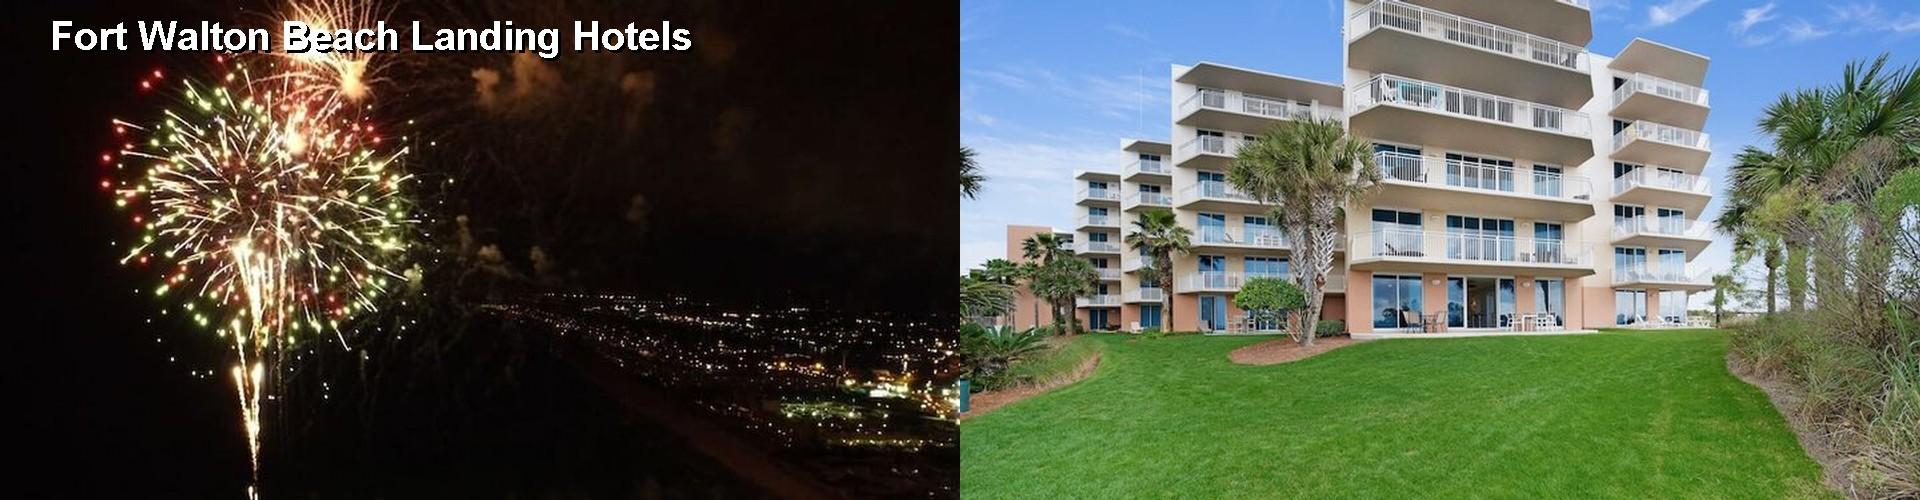 $69+ Hotels Near Fort Walton Beach Landing FL